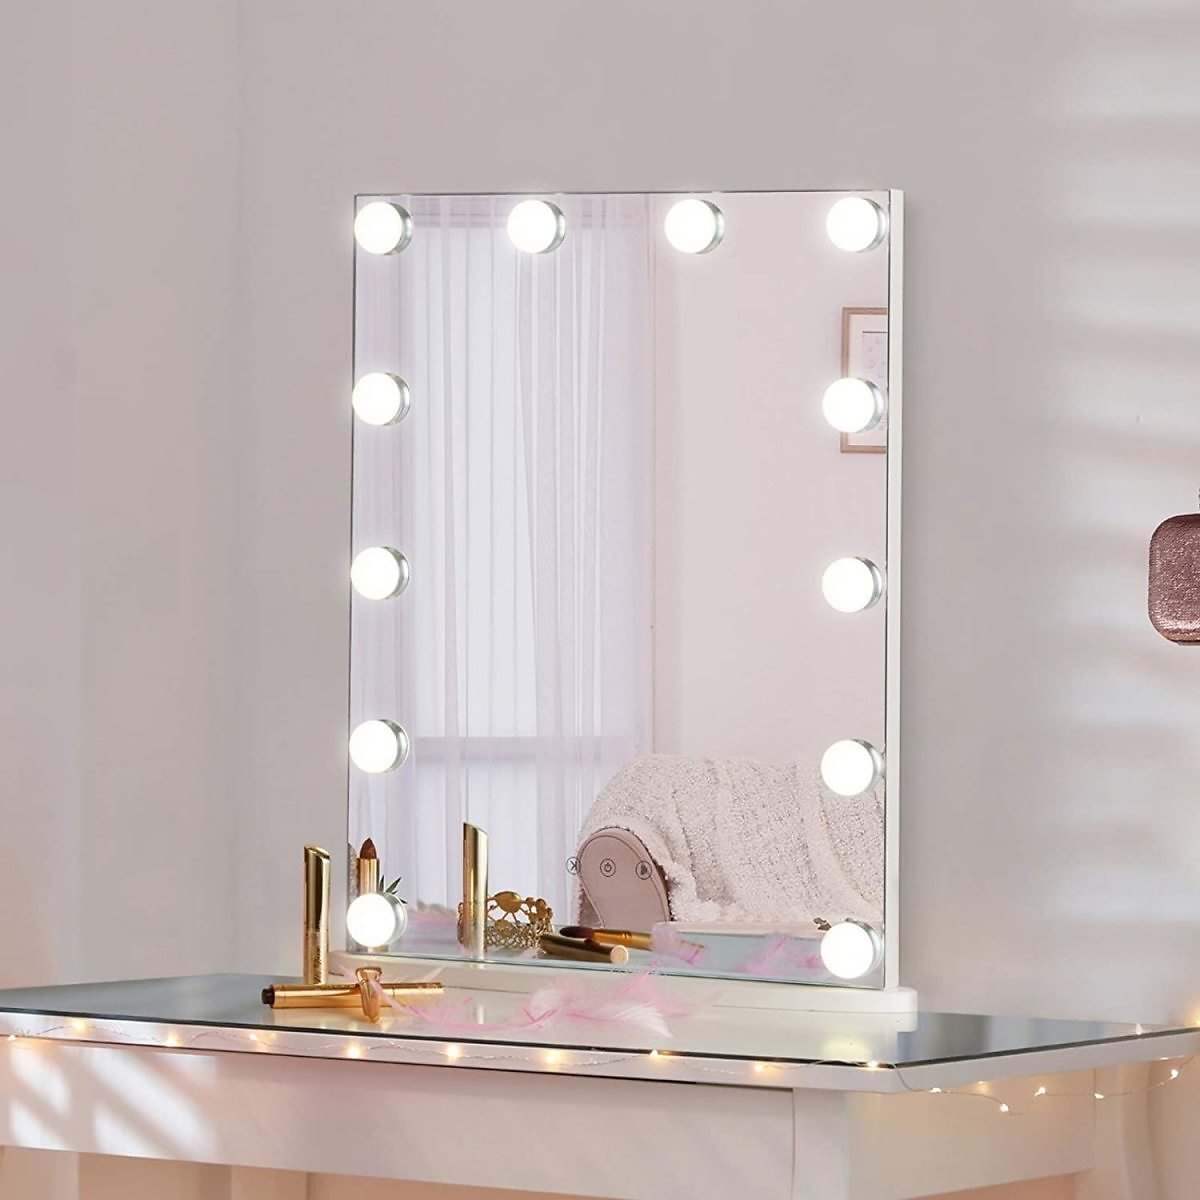 LUXFURNI Vanity Tabletop Hollywood Makeup Mirror w/ USB-powered Dimmable Light, Touch Control, 12 Day/Warm LED Light